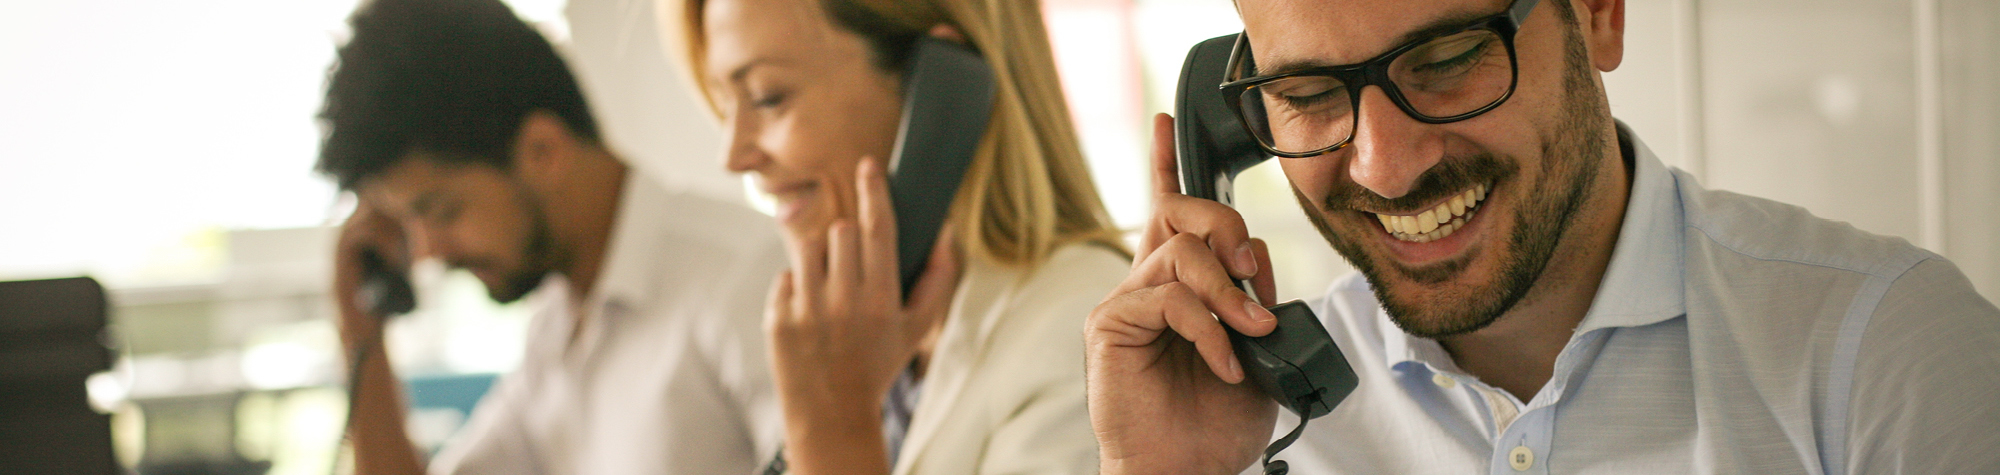 Commercial Discipline Header Image. Featuring male call centre agent speaking on the phone. Also featuring other call centre agents alongside him. Representing exceptional call centre & commercial jobs from Search Consultancy.